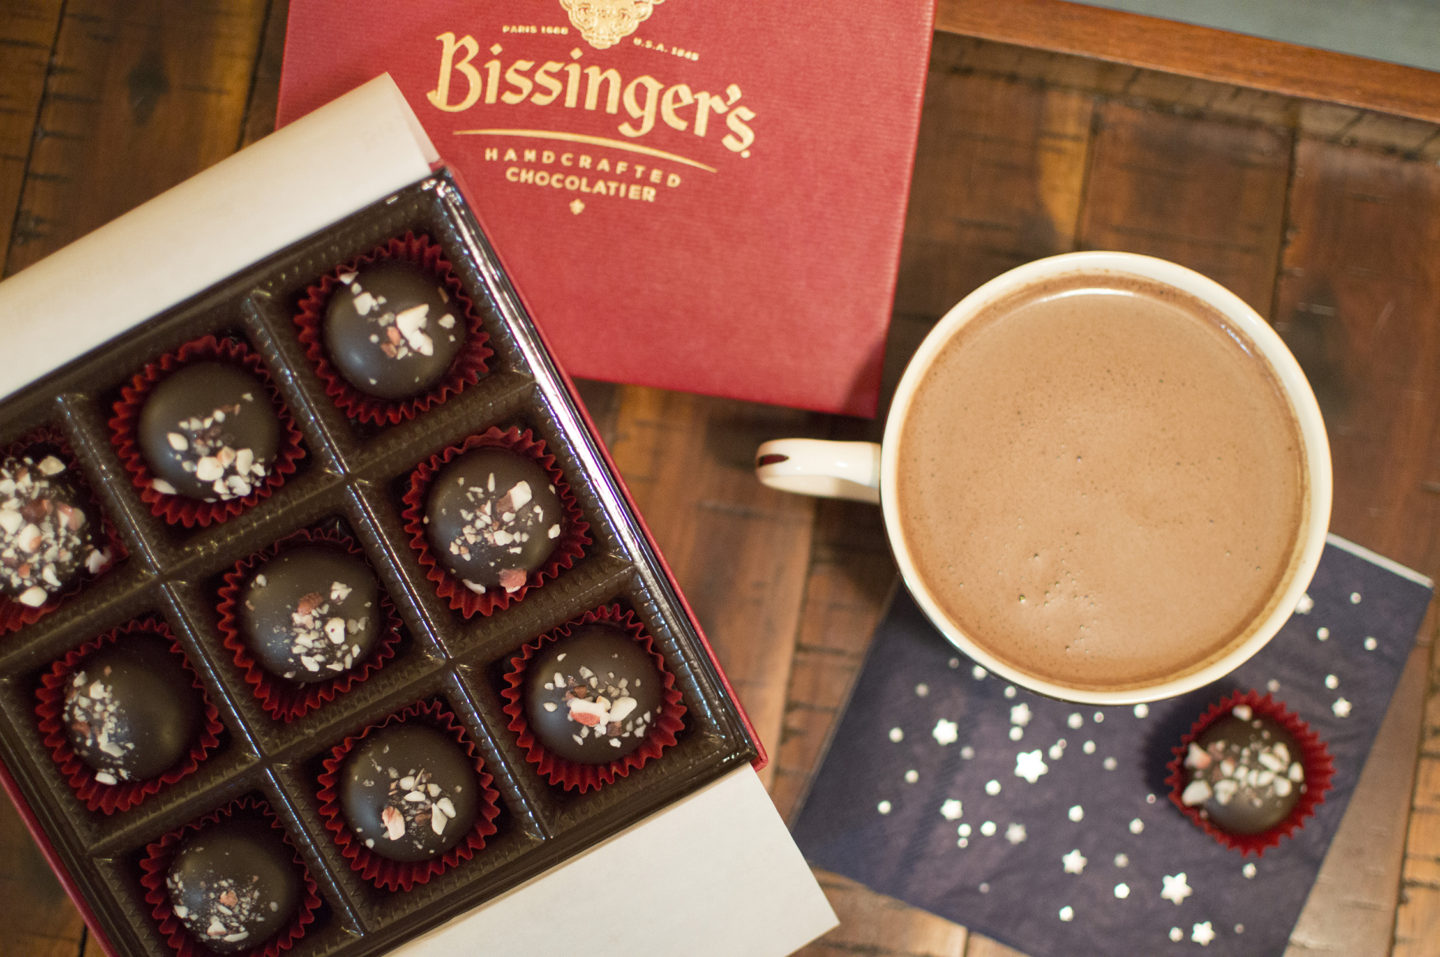 Holiday Giveaway Week: Win a $75+ Bissinger's Handcrafted Chocolatier Gift Set